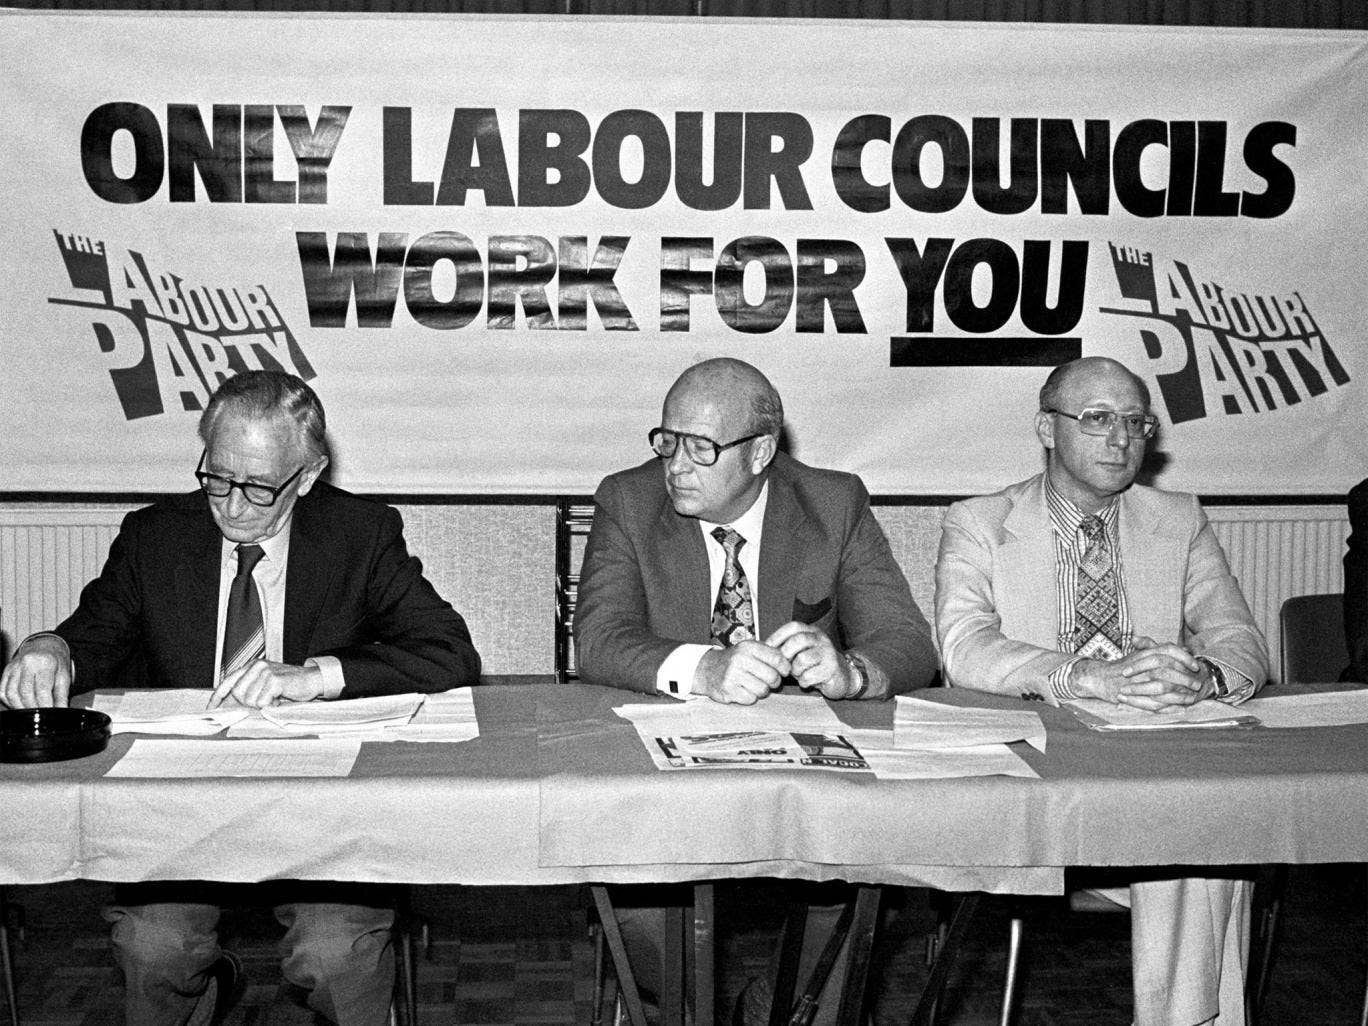 Mortimer, centre, at a press conference in 1982 with Frank Allaun, left, and Gerald Kaufman